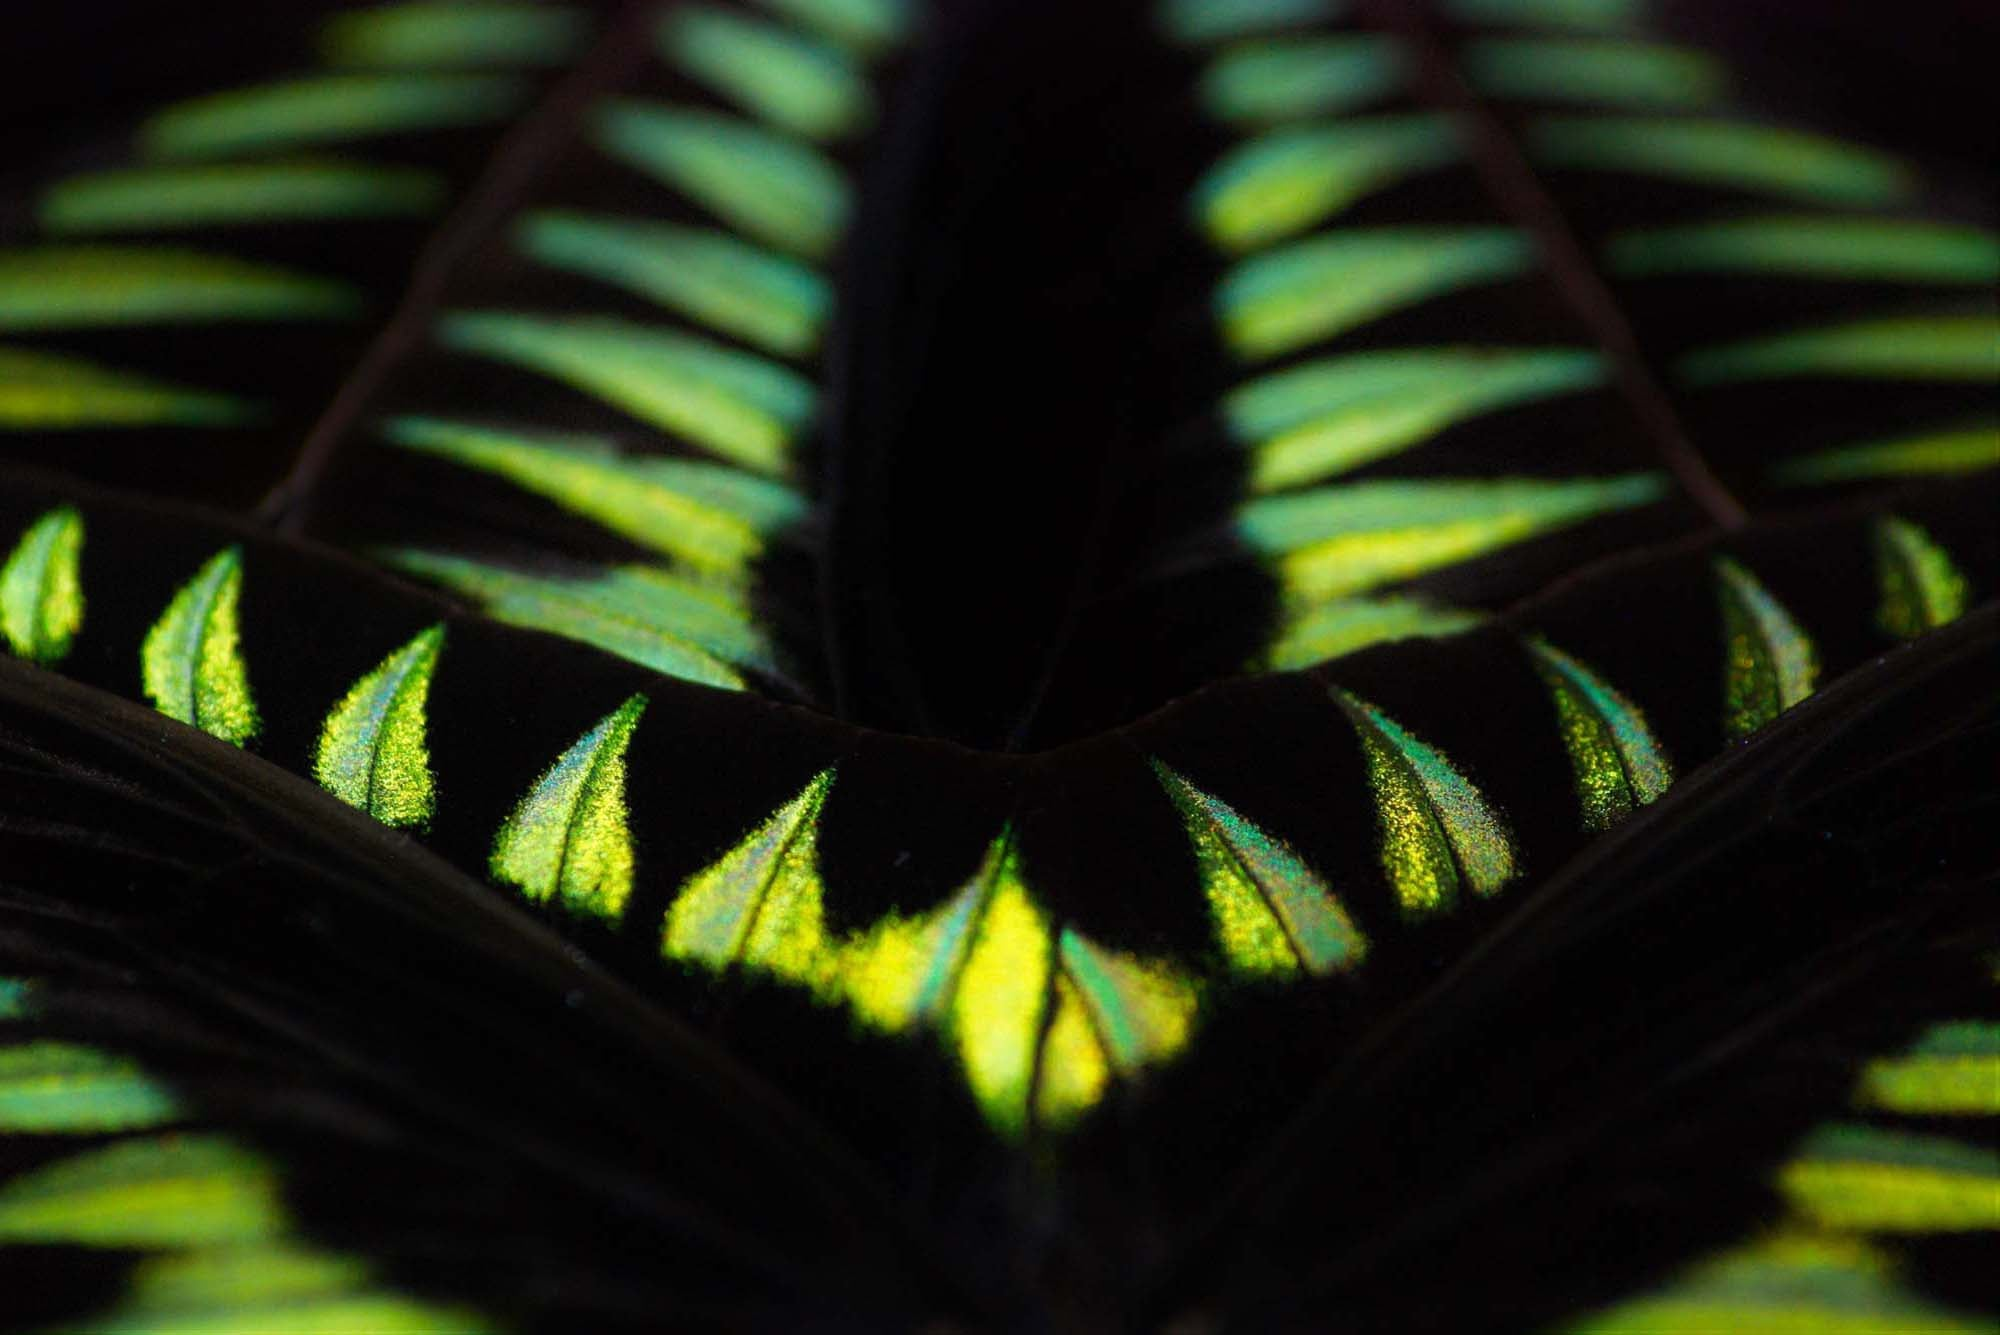 KHAMAMA butterfly wing art with green and black rajah brooke butterfly wings showing the most beautiful colours of nature